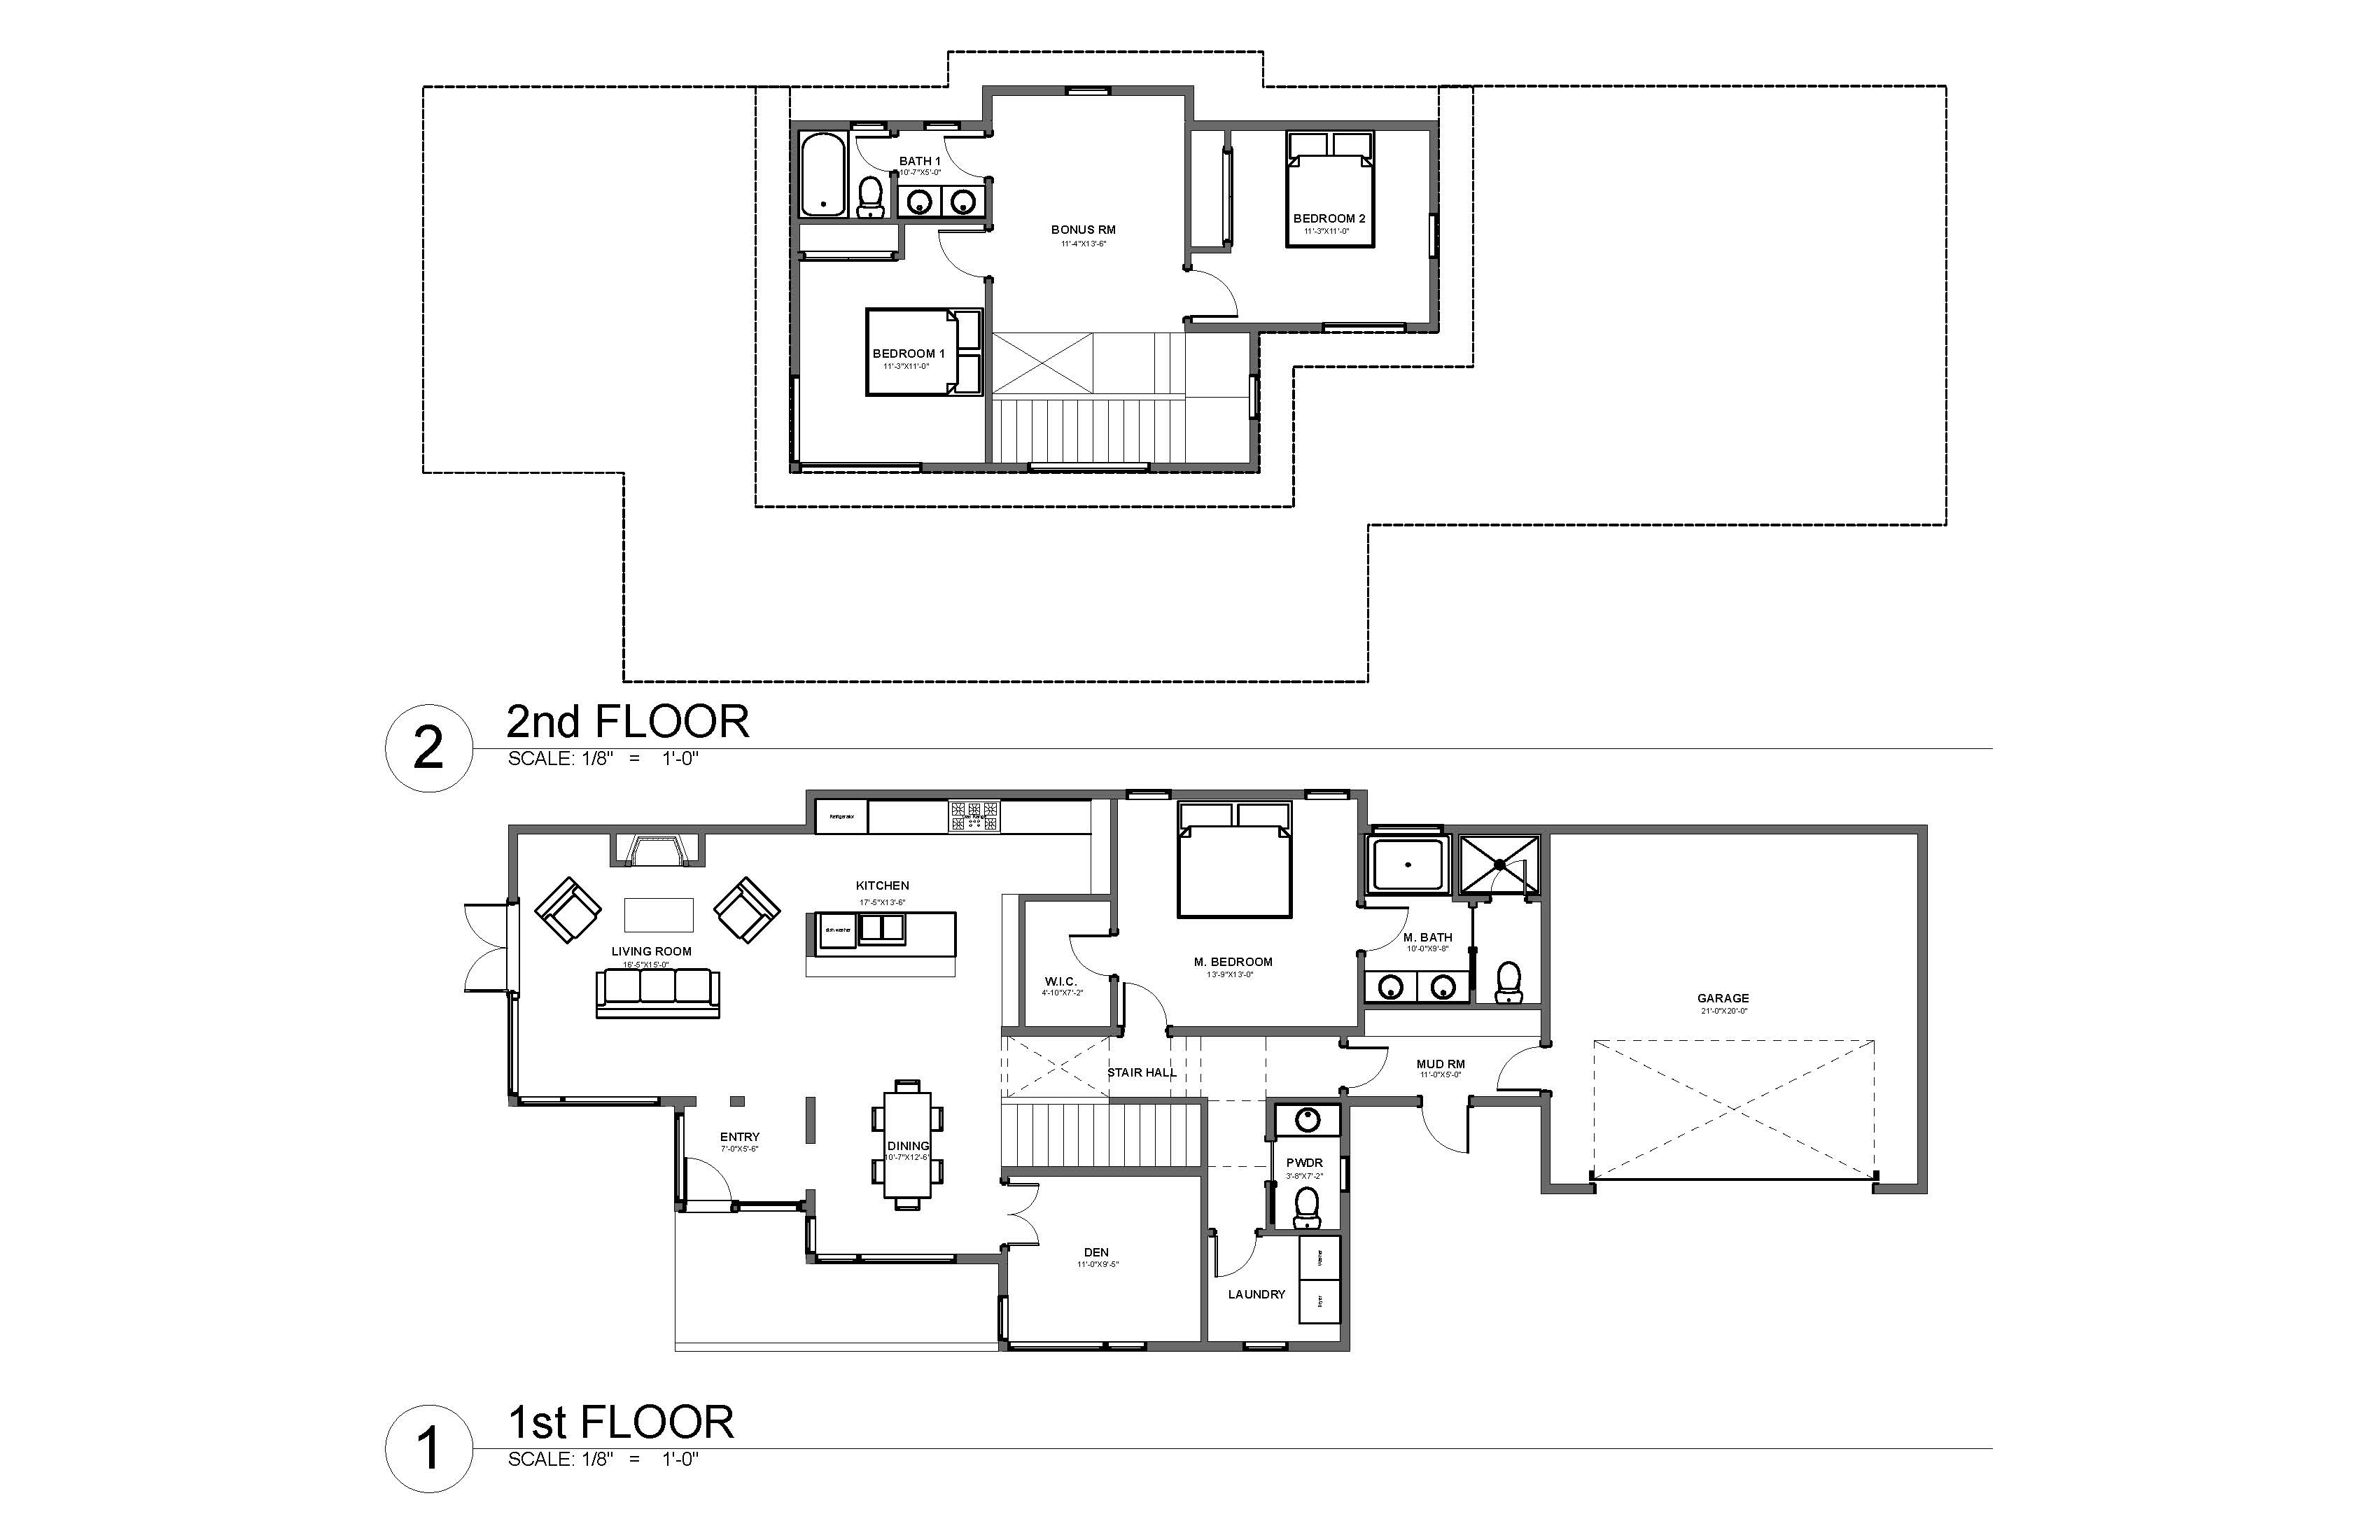 Sw bend oregon floor plan h hudson homes for House plans bend oregon